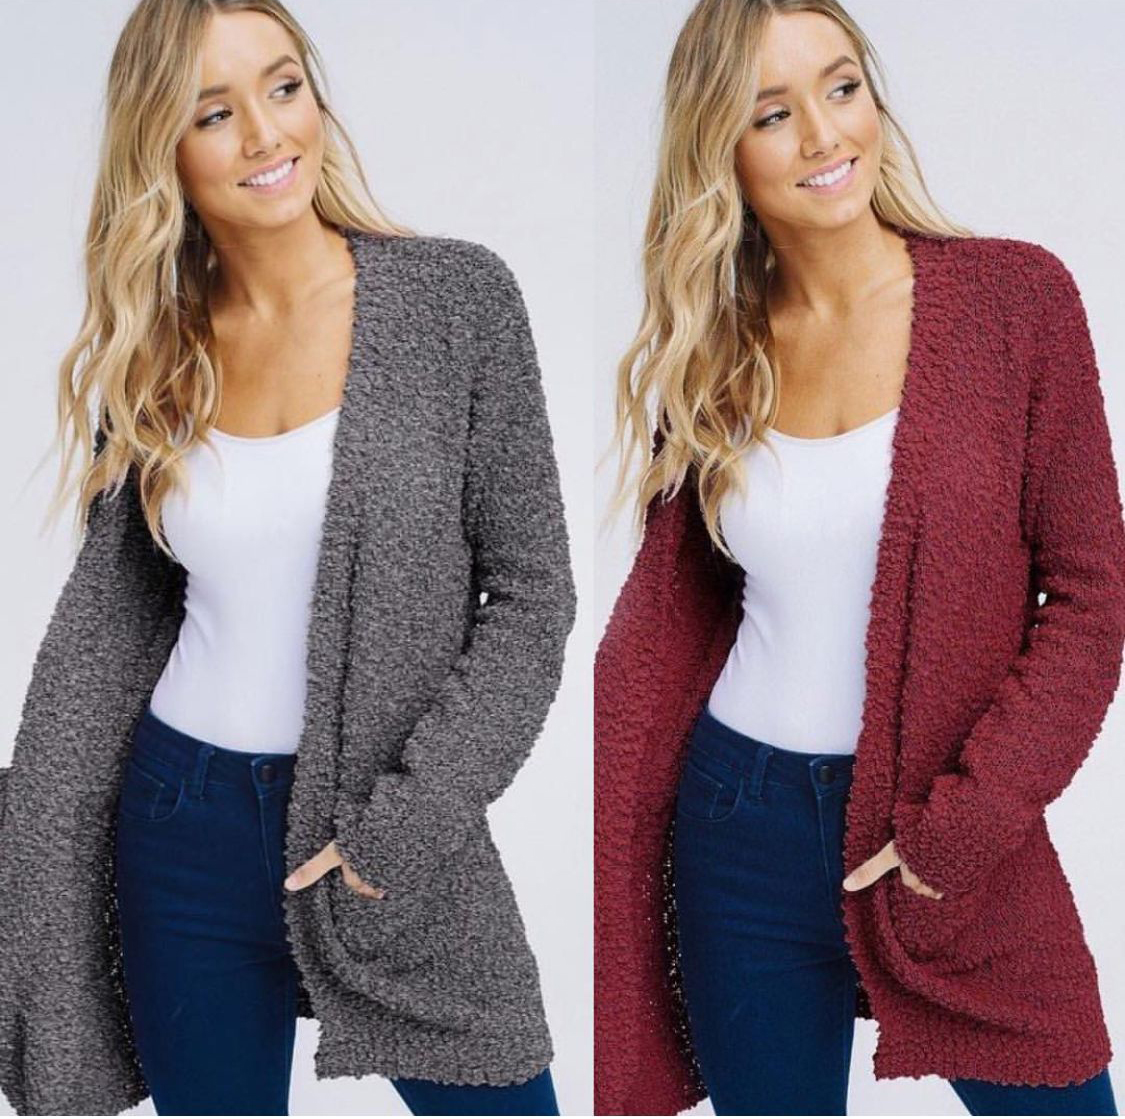 E78 Popcorn <strong>cardigans</strong> with pockets ladies <strong>cardigan</strong> sweaters 2019 <strong>cardigan</strong> sweater